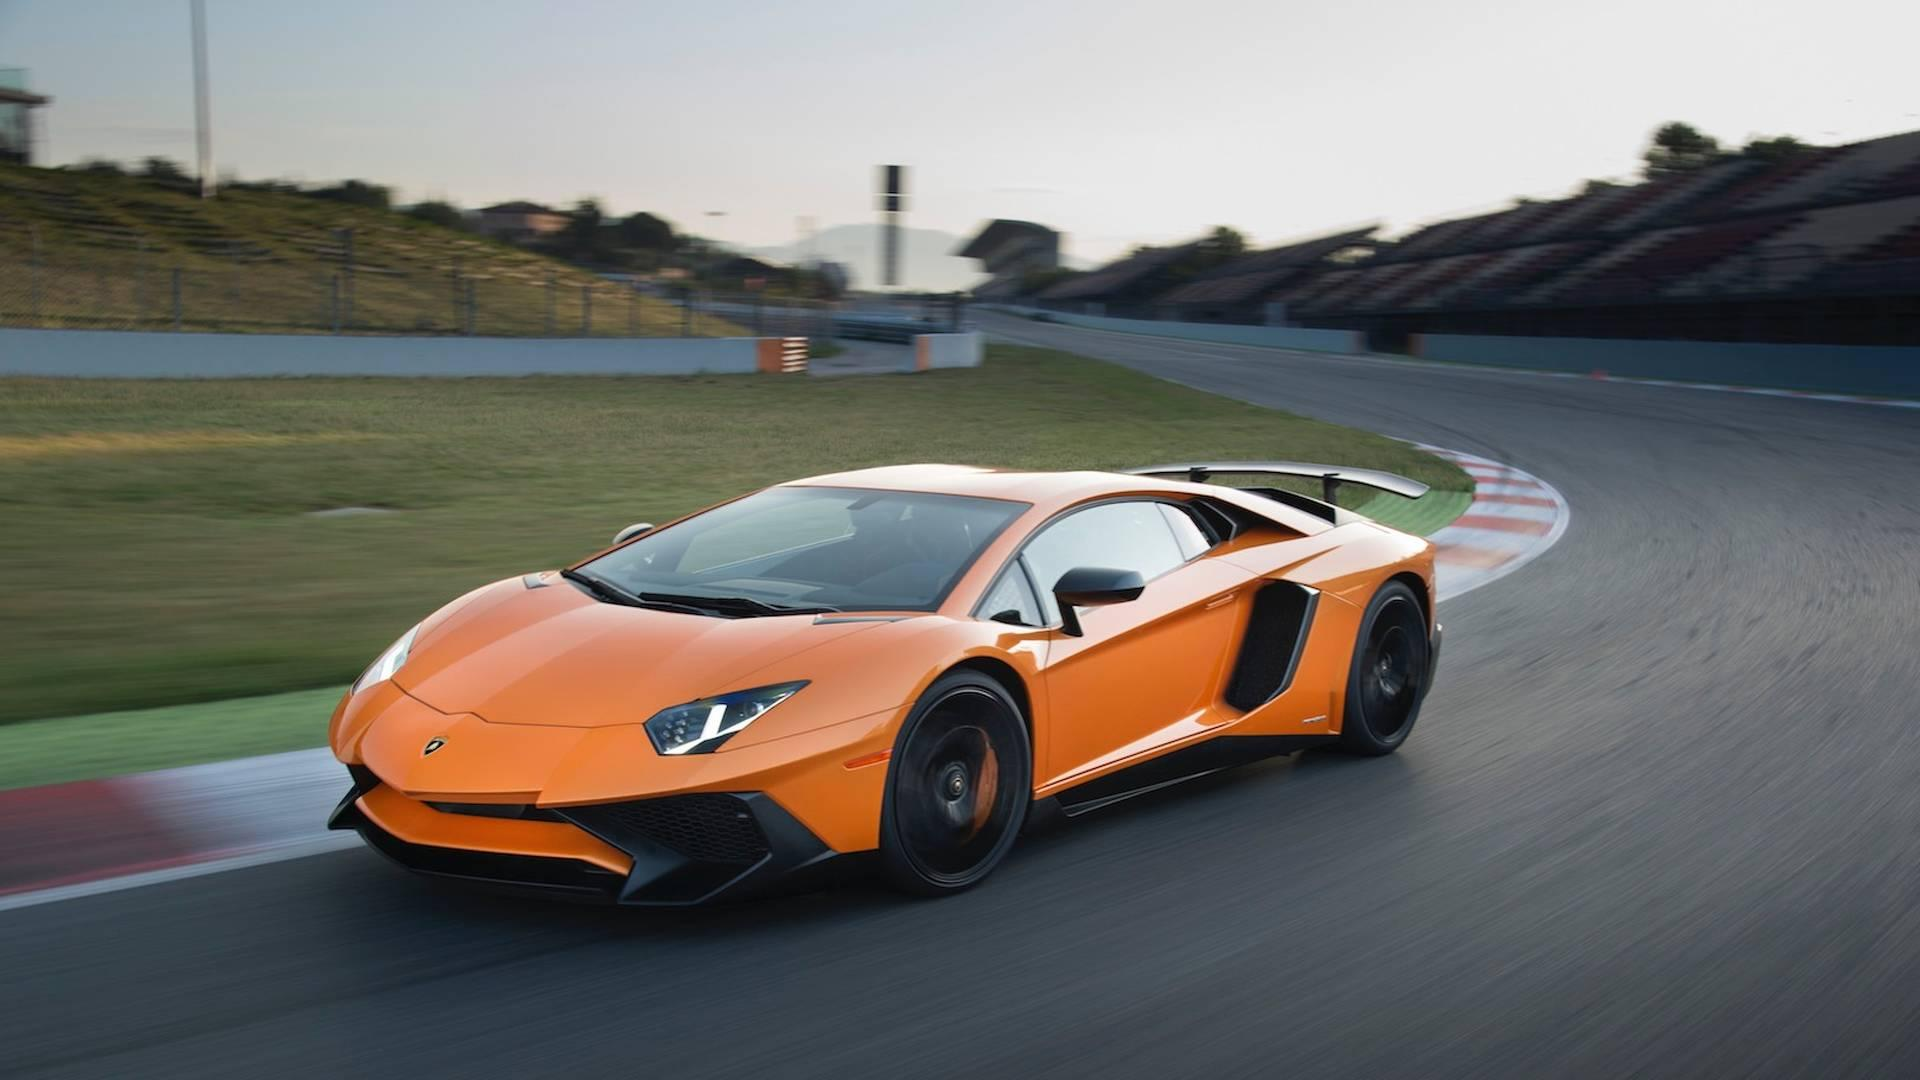 """<p>The first <a href=""""https://www.motor1.com/lamborghini/"""" rel=""""nofollow noopener"""" target=""""_blank"""" data-ylk=""""slk:Lamborghini"""" class=""""link rapid-noclick-resp"""">Lamborghini</a> in the list is the Aventador with its 750 hp (559 kW) of power, which recorded an impressive time in 2015, with Marco Mapelli at the wheel.</p>"""